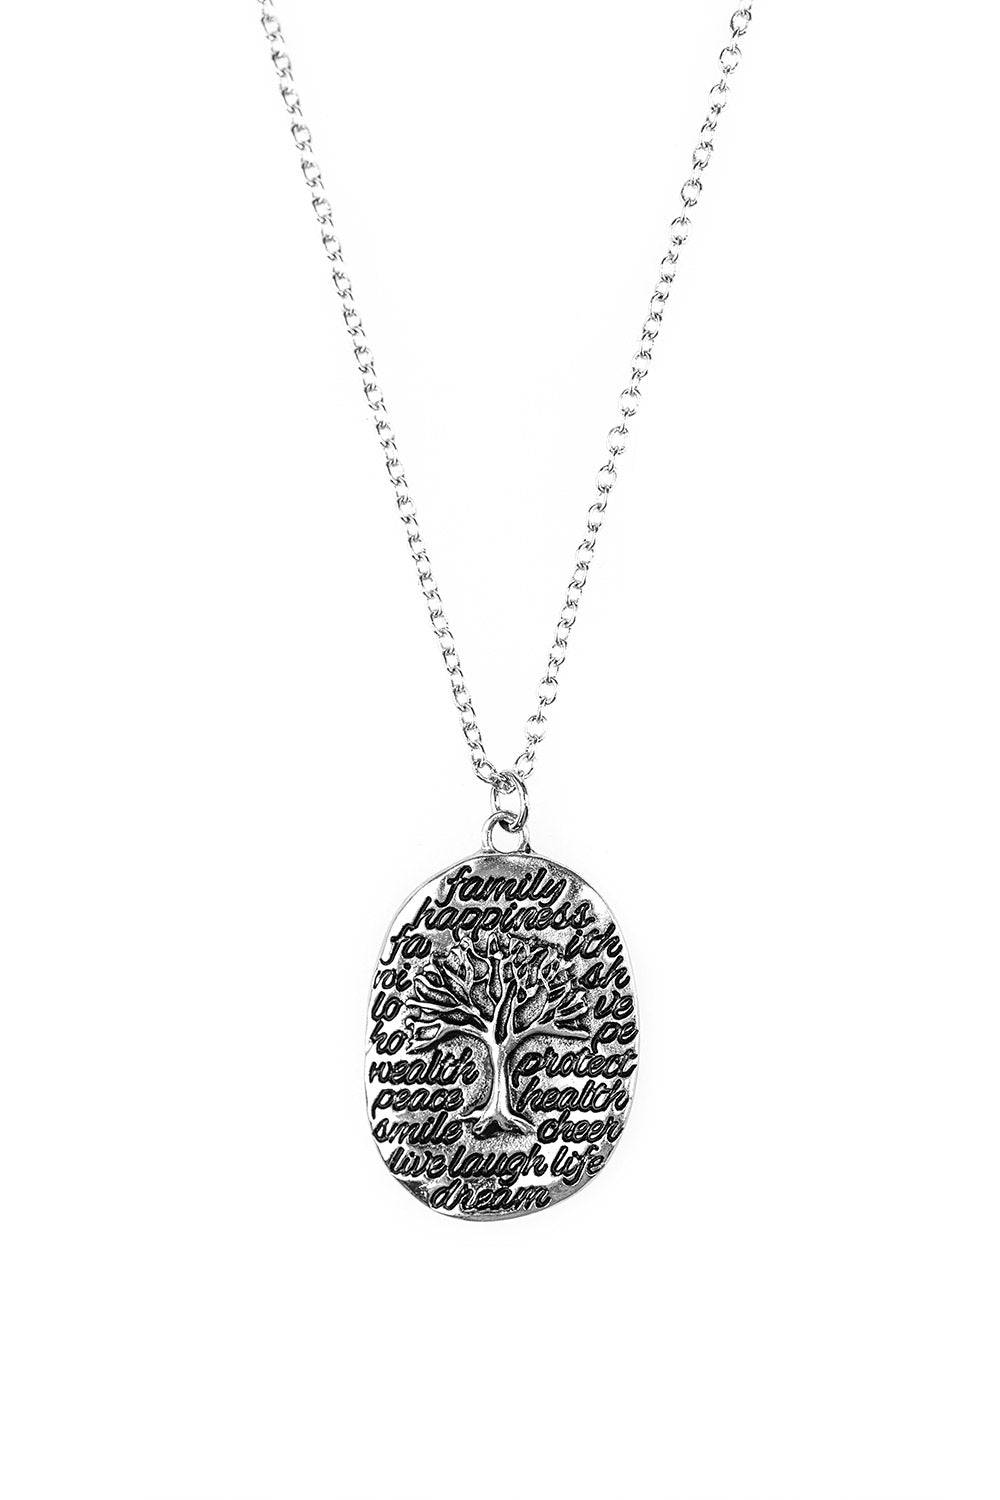 Type 2 Wisdom Imparted Necklace